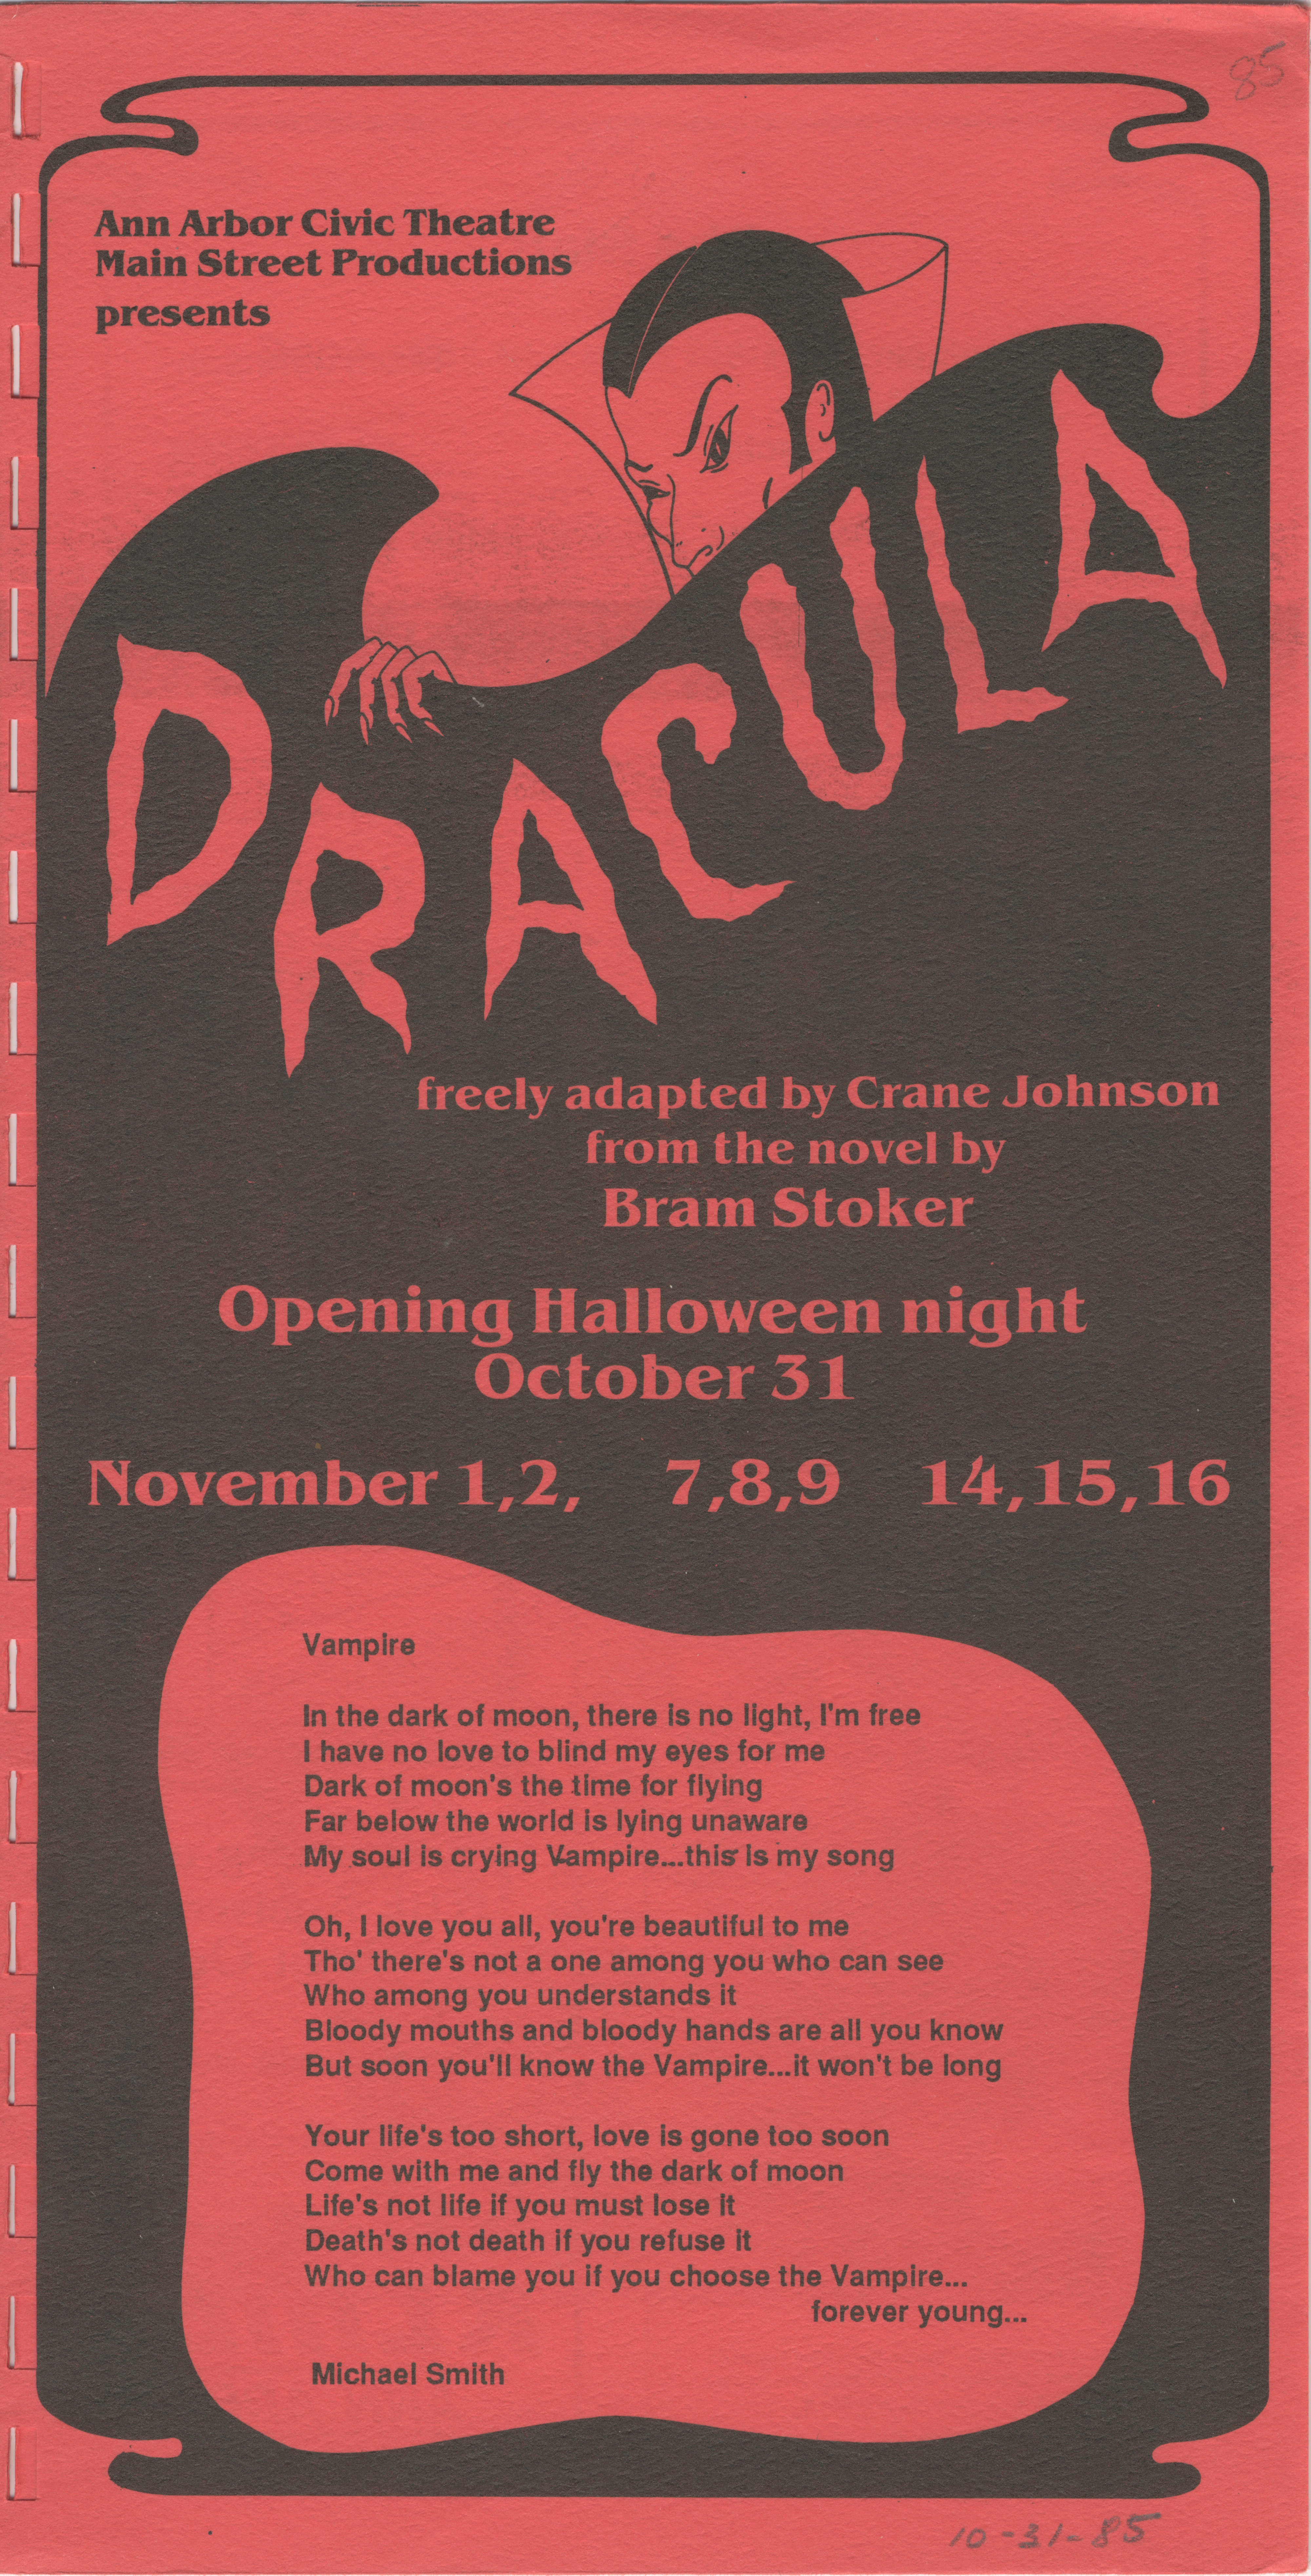 Ann Arbor Civic Theatre Program: Dracula, October 31, 1985 image